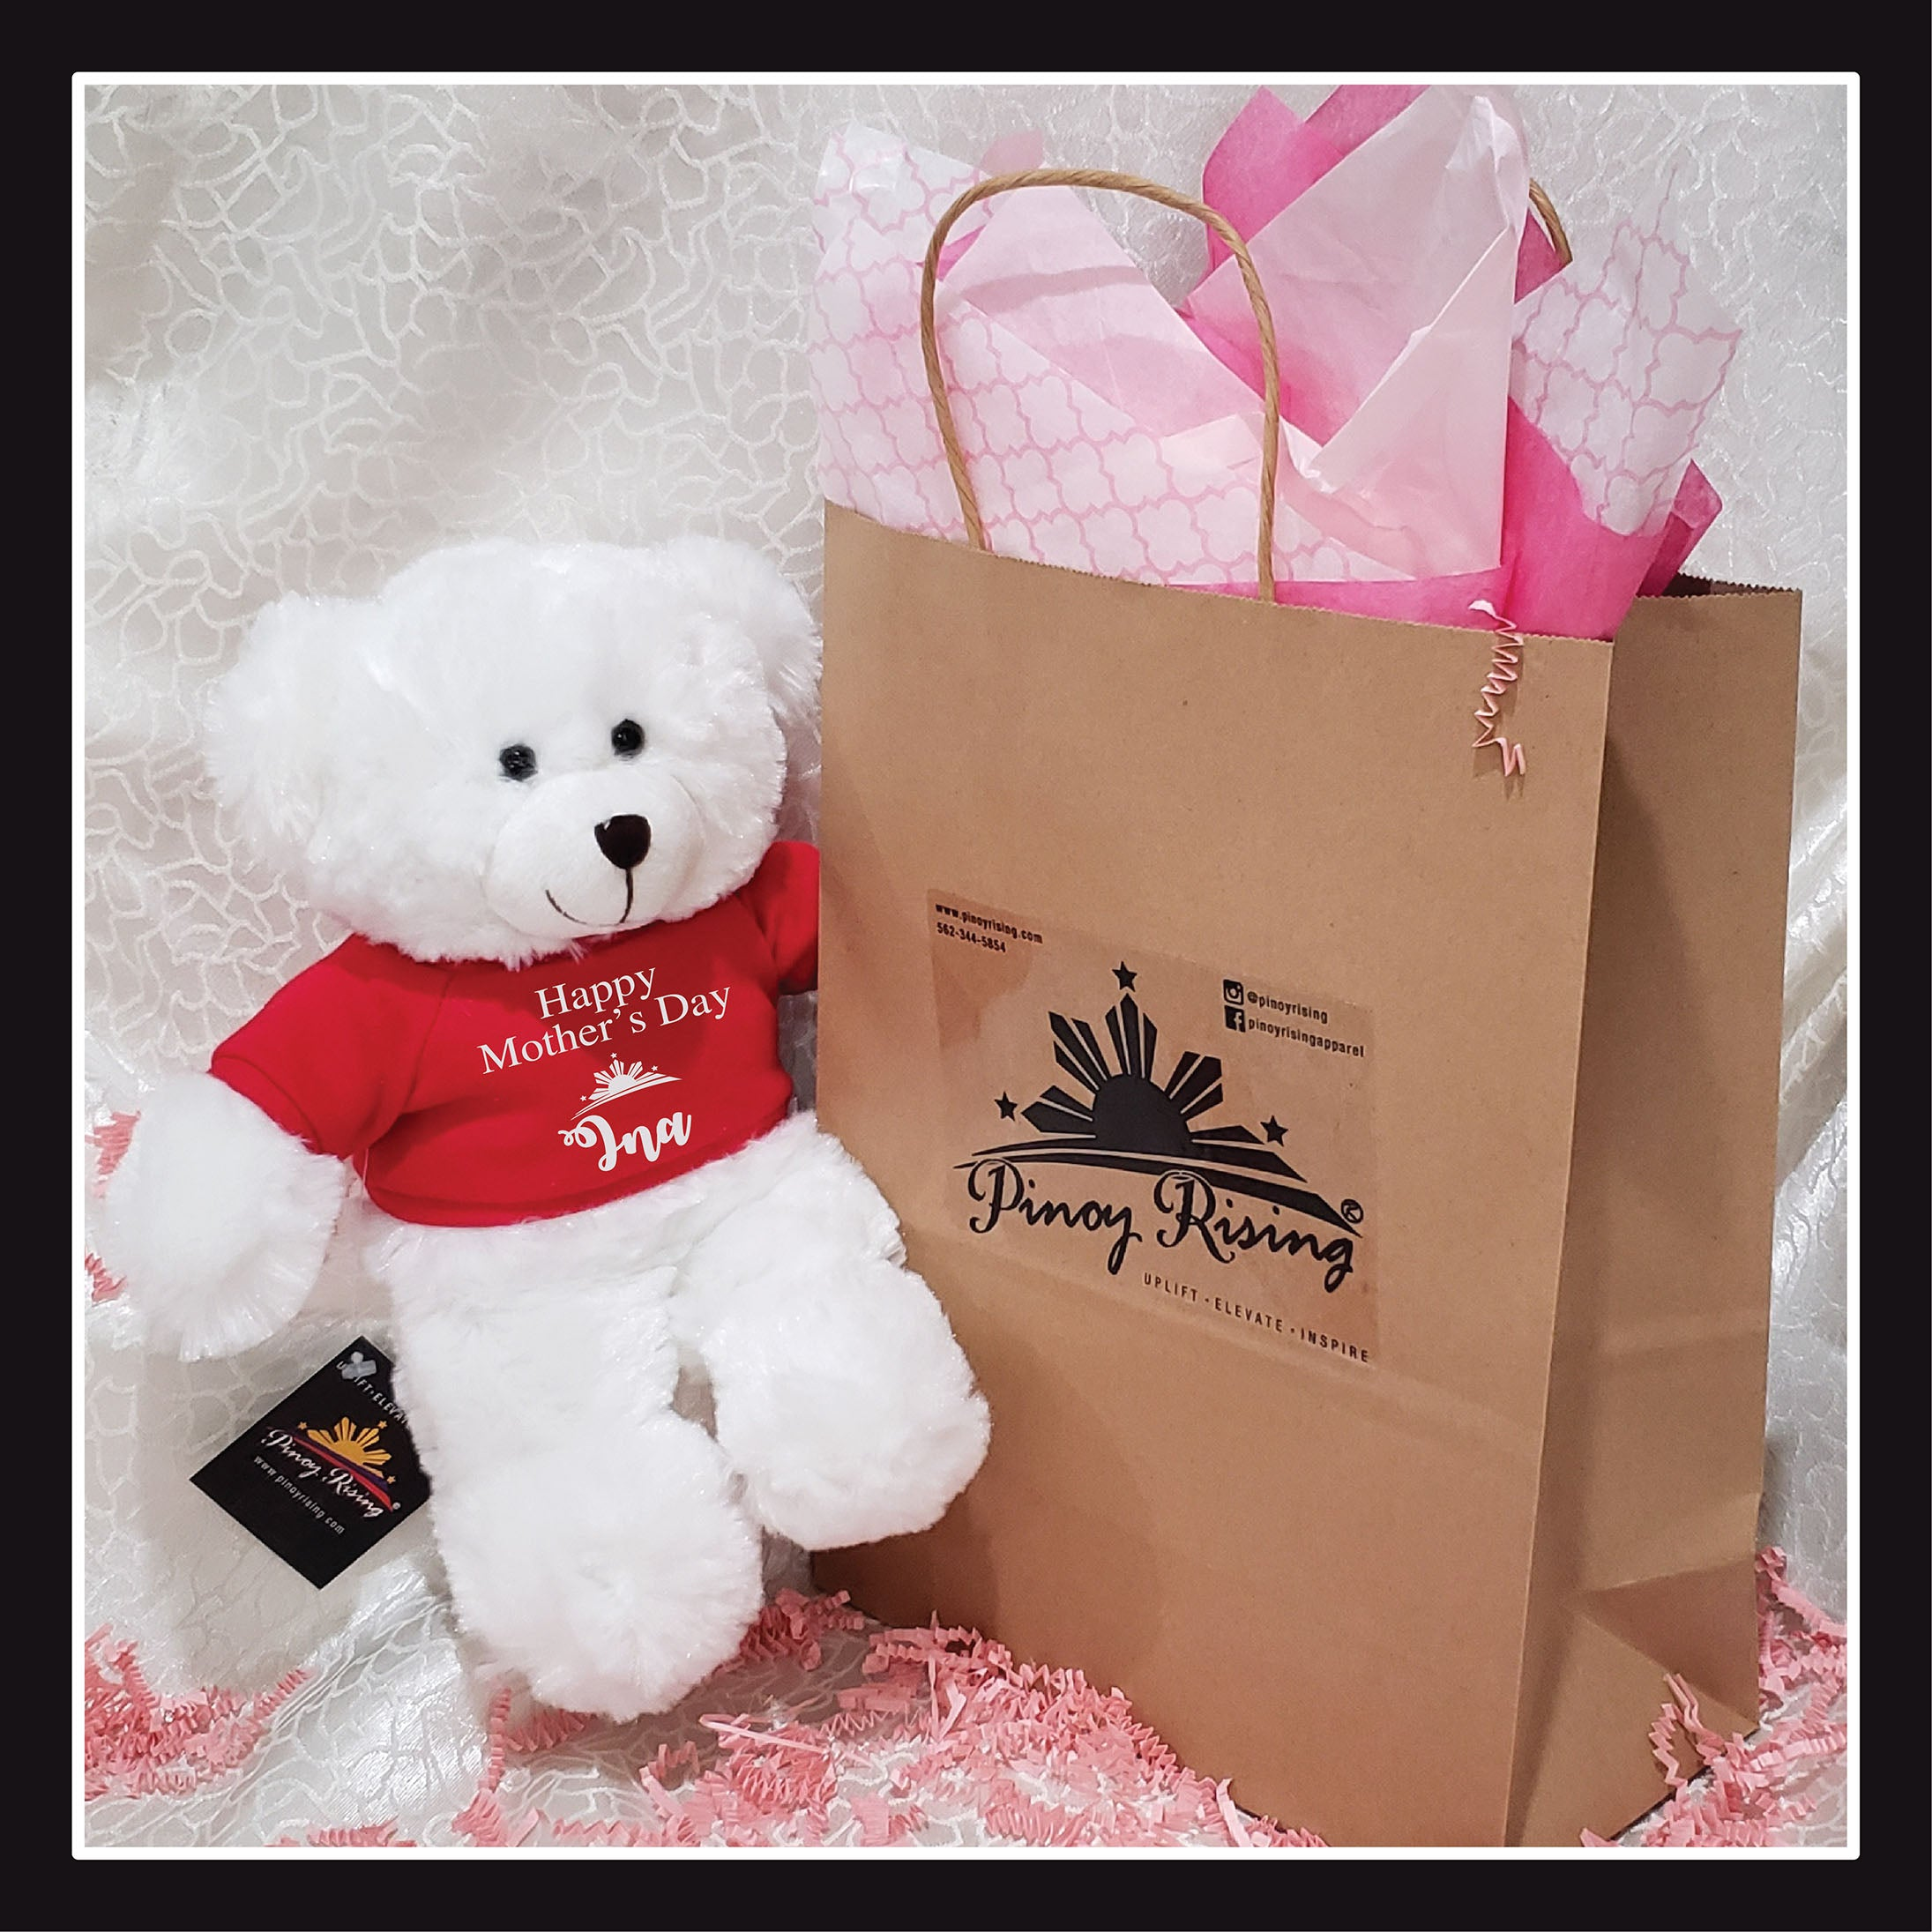 Mother's Day White Plush Teddy Bear Toy - Pinoy Rising - Special Edition Gift Package